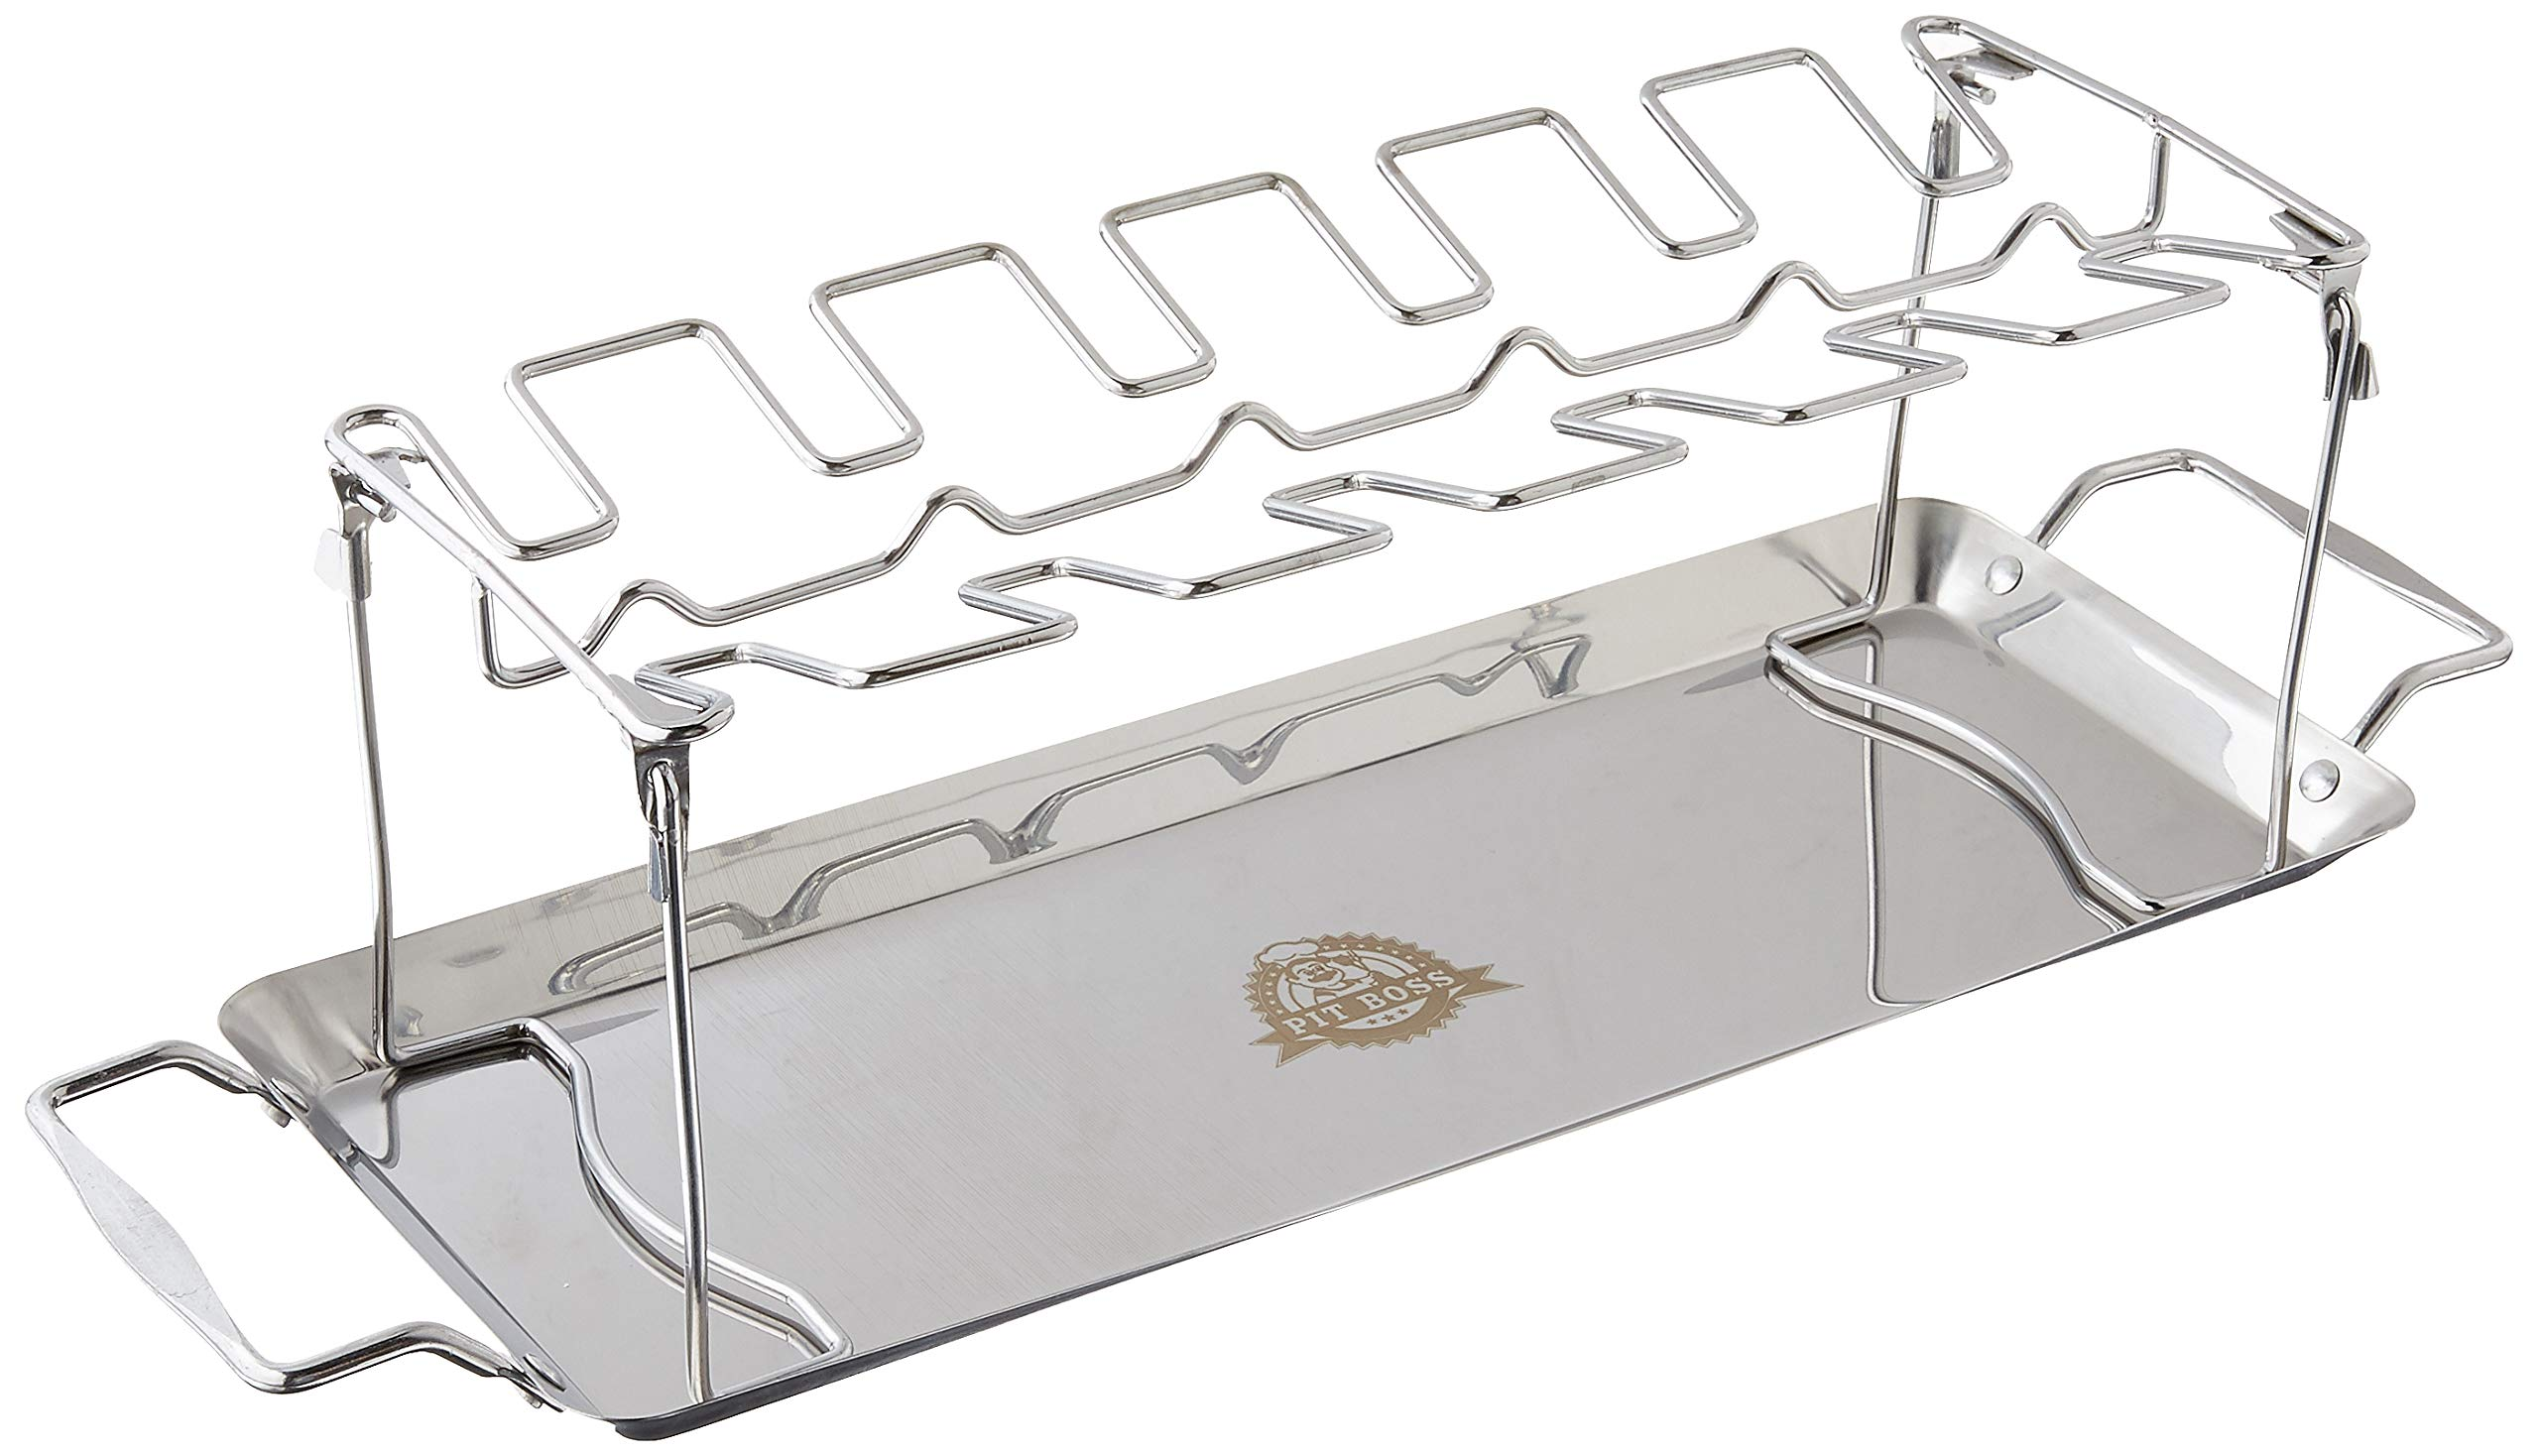 Pit Boss Grills 67280 Wing Leg Rack by Pit Boss Grills